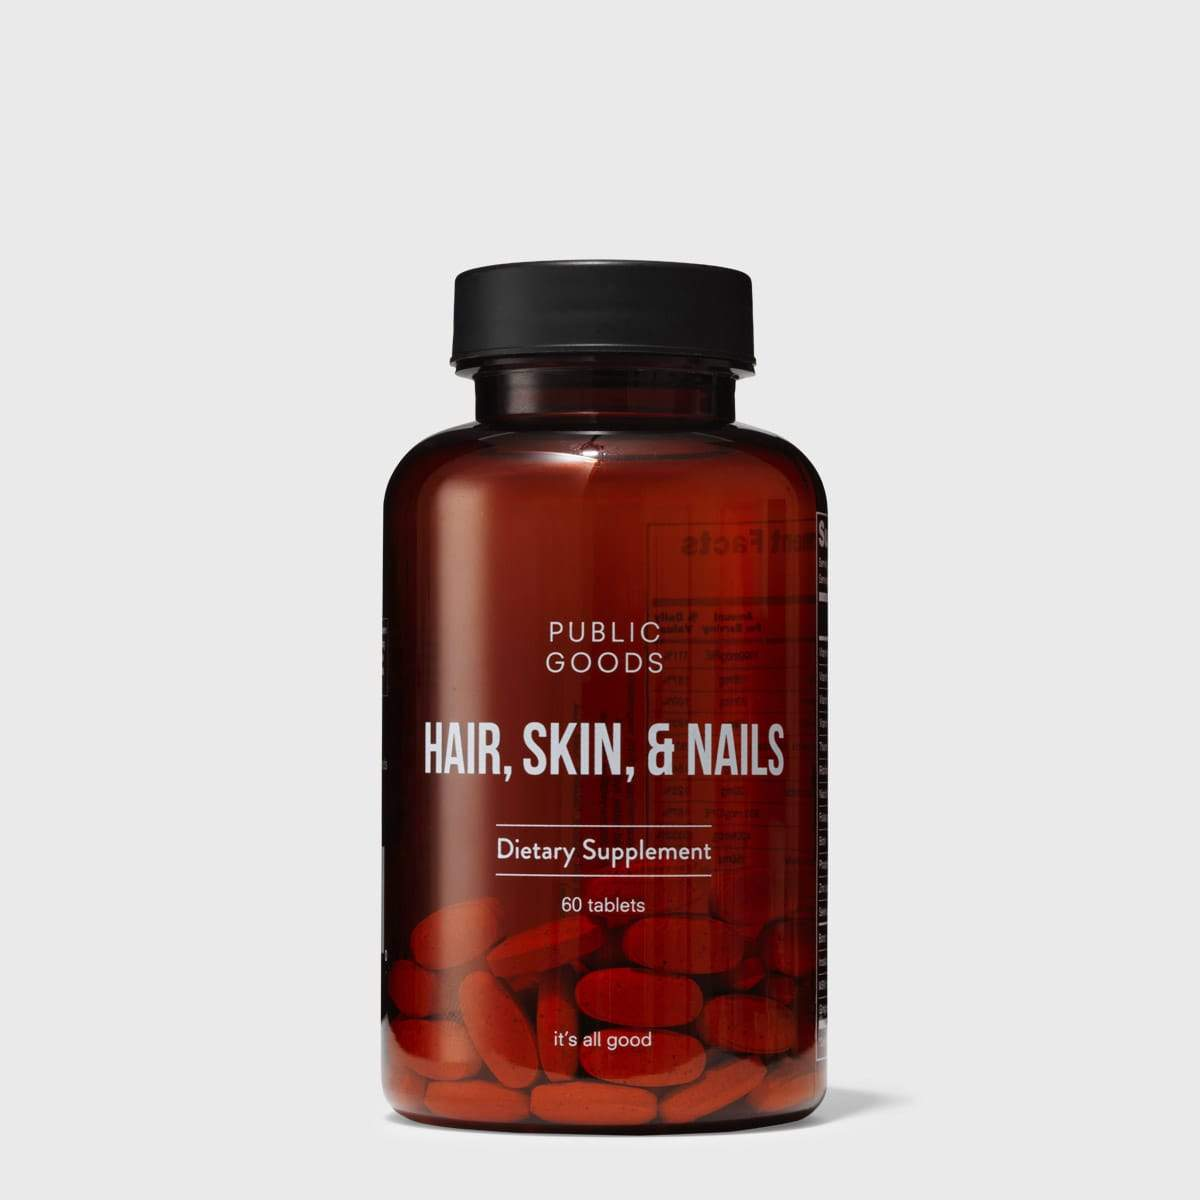 Public Goods Supplement Hair, Skin, & Nails